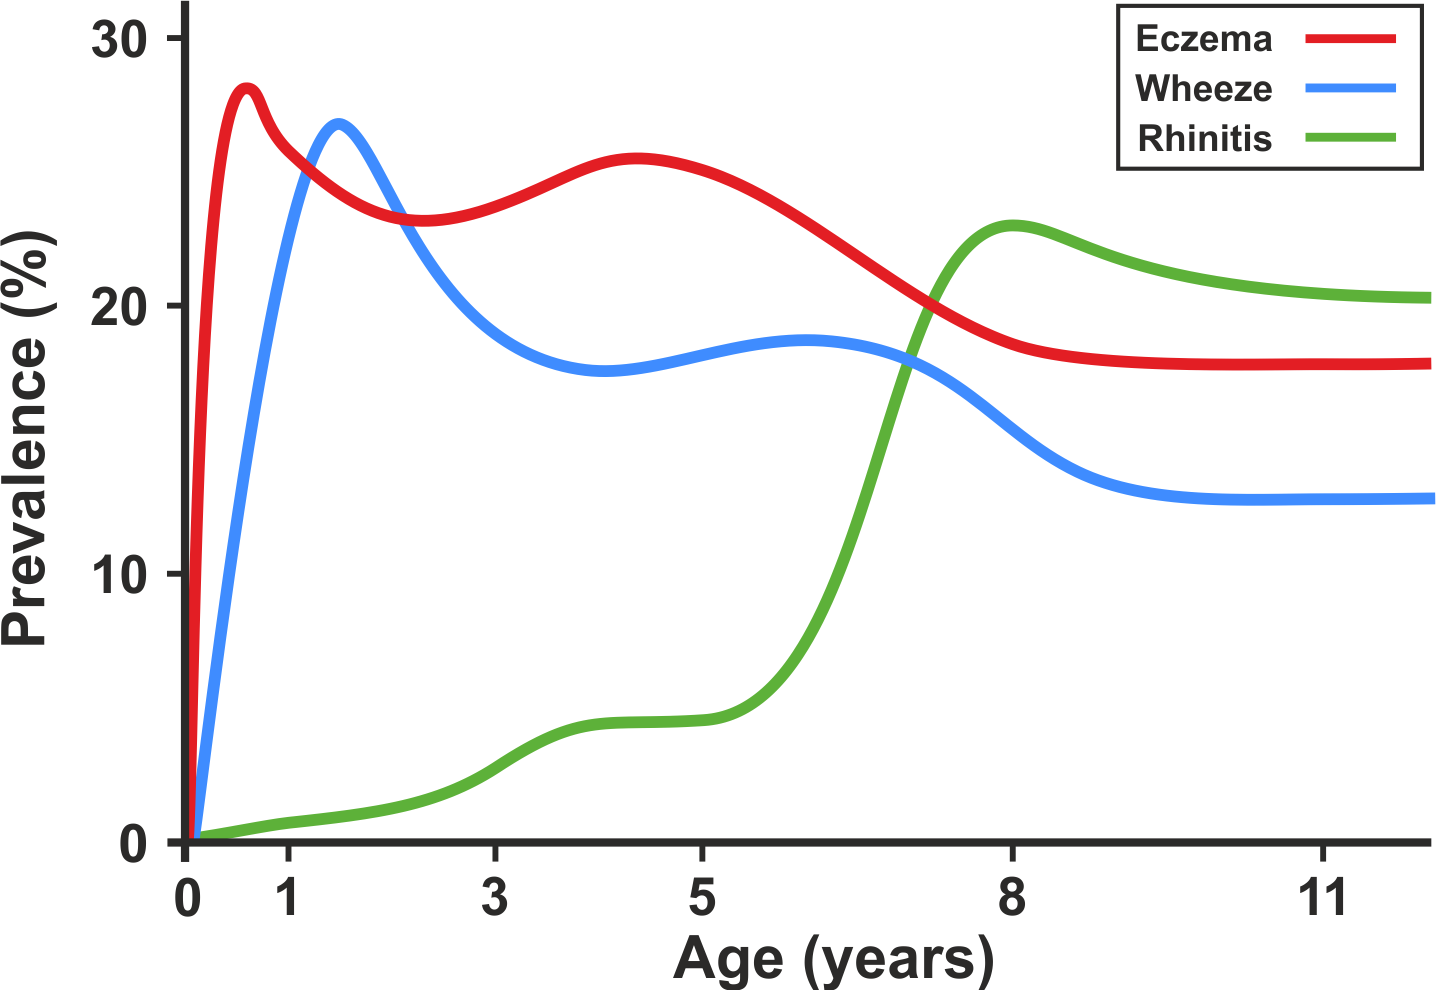 Profile plot showing cross-sectional change in prevalence of eczema, wheeze, and rhinitis in the ALSPAC and MAAS birth cohorts.